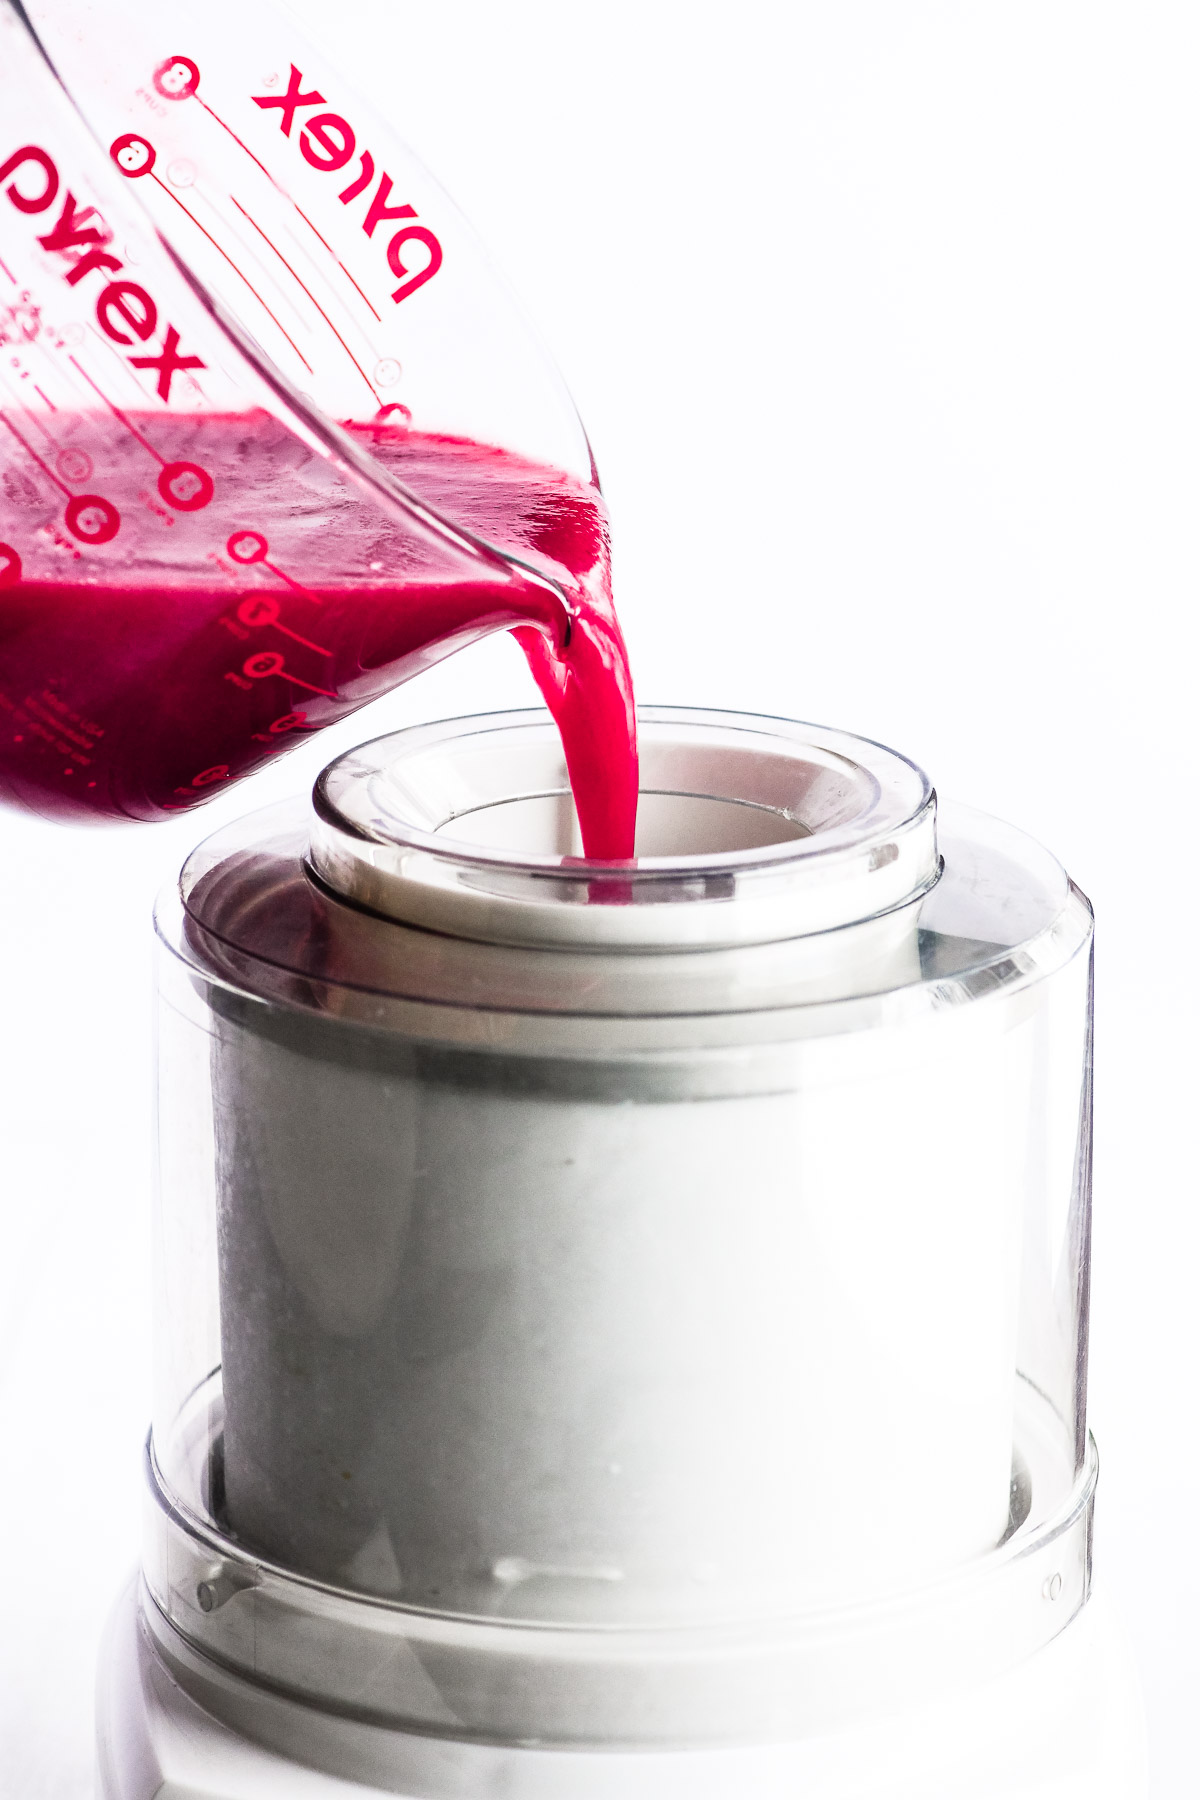 pouring raspberry champagne sorbet mix into an ice cream machine